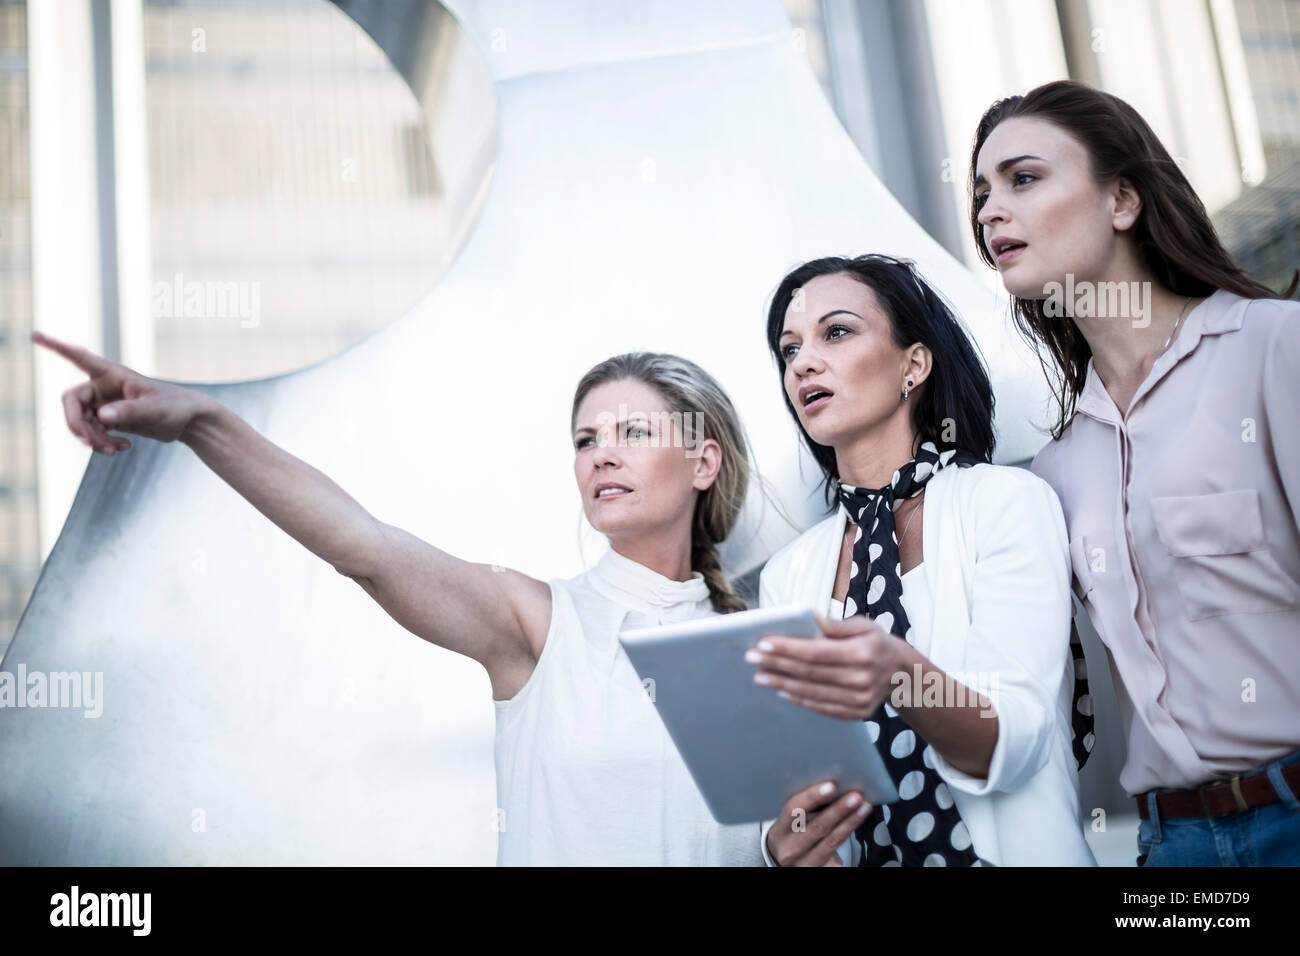 Three women with digital tablet in the city Stock Photo